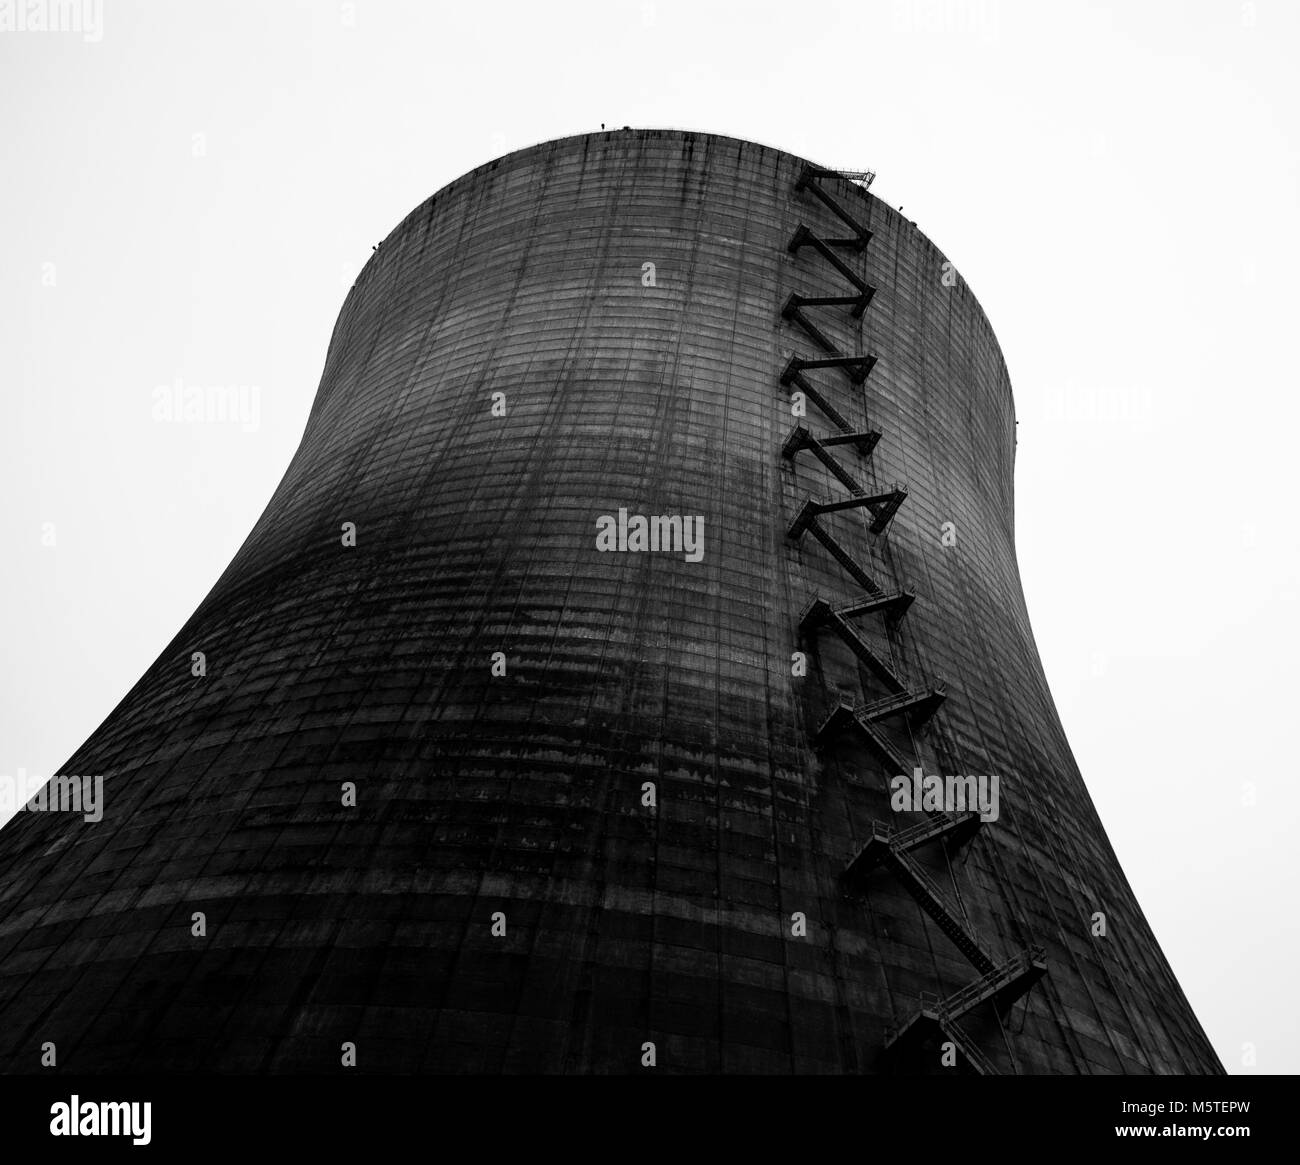 Nuclear reactor cooling tower taken in black and white - Stock Image